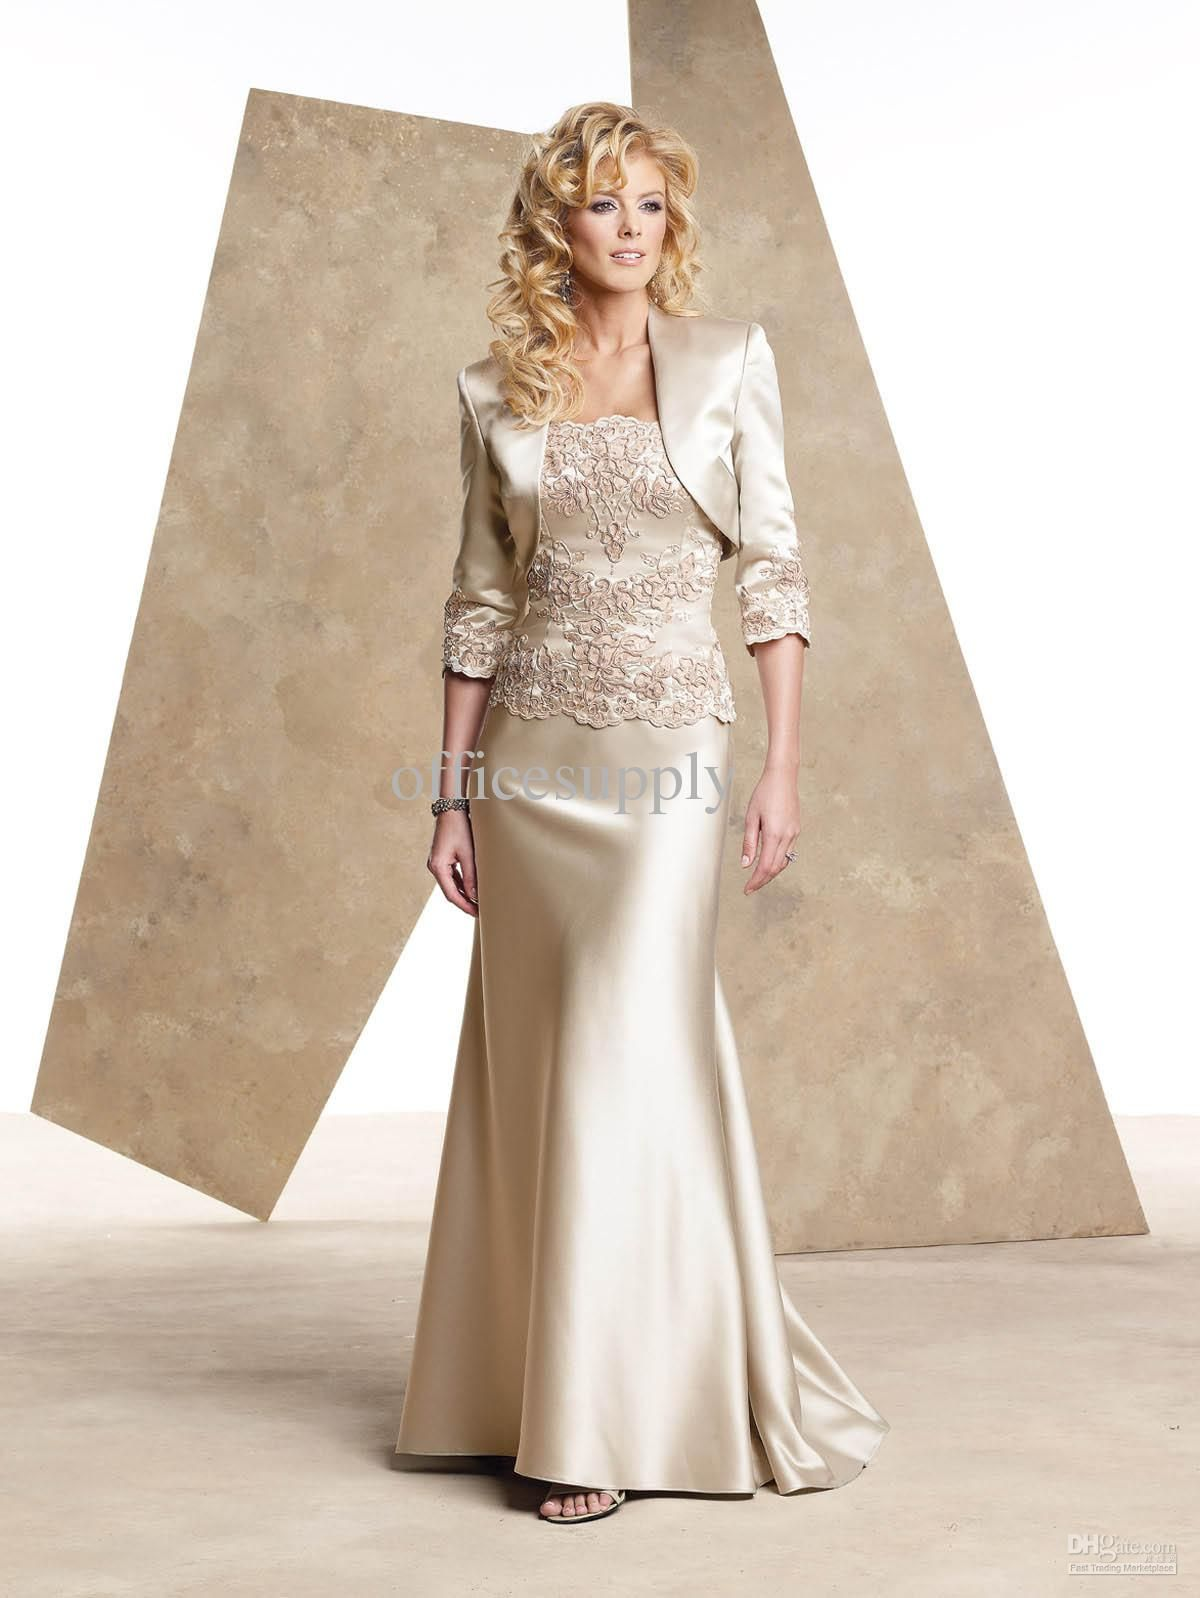 50590fde67a Wholesale 2012 DHgate New Style Discount Strapless Champagn Sheath Bolero  Mother of the Bride Dress 18912